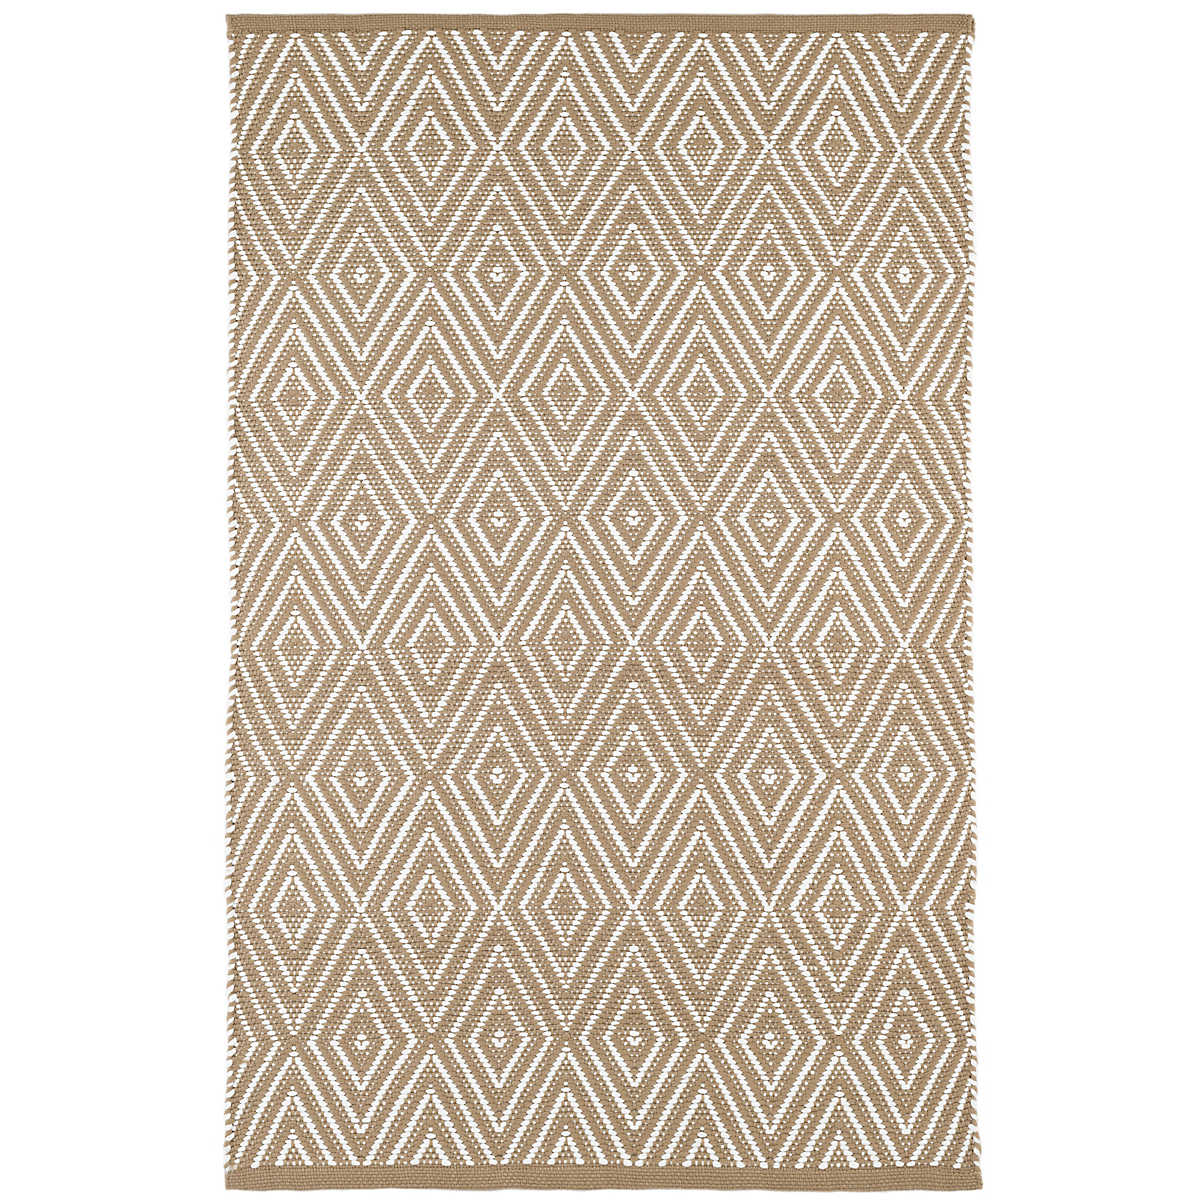 Diamond khaki white indoor outdoor rug dash albert for Dash and albert runners